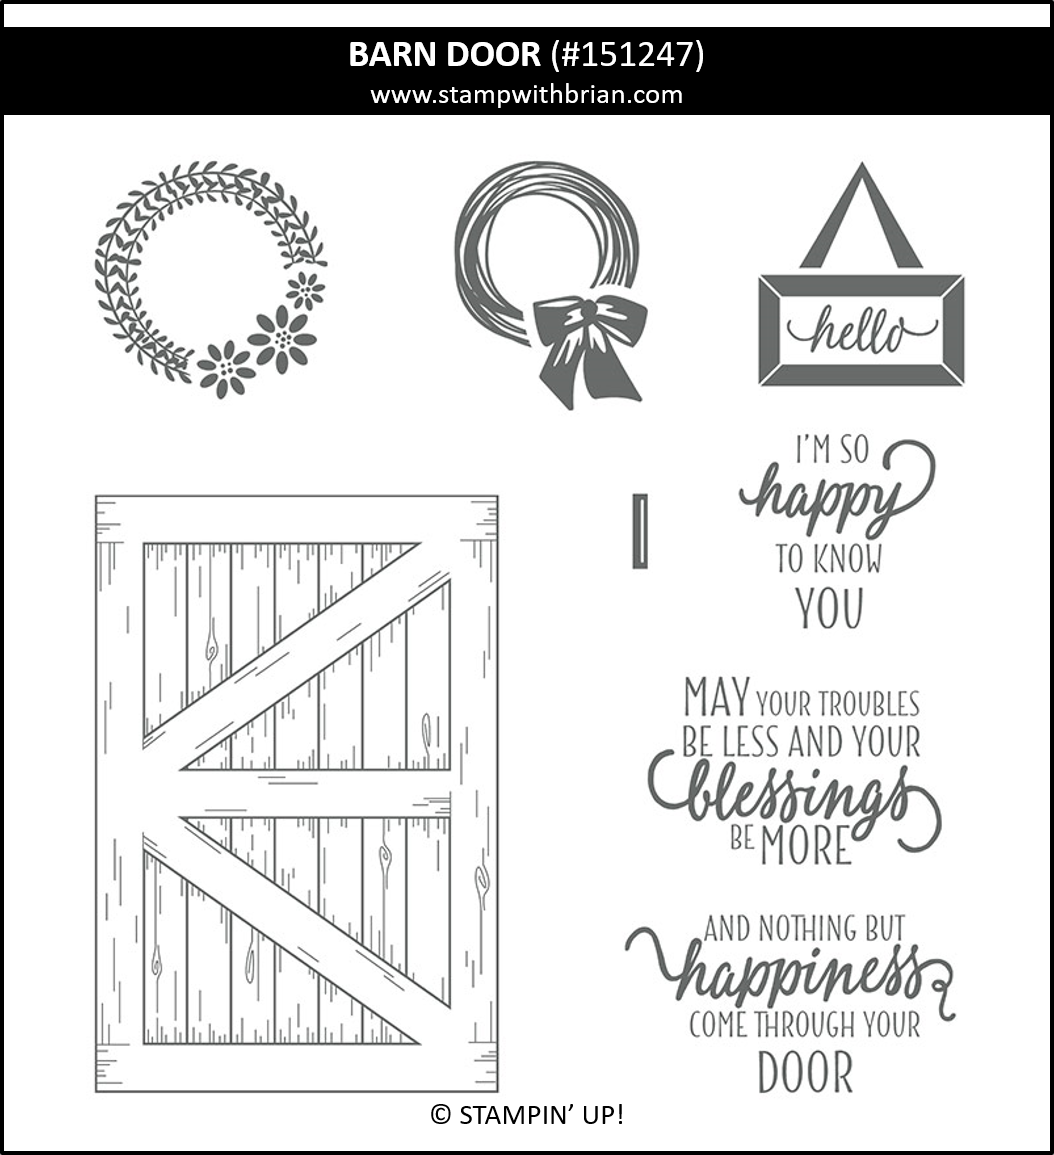 Barn Door, Stampin' Up! 151247